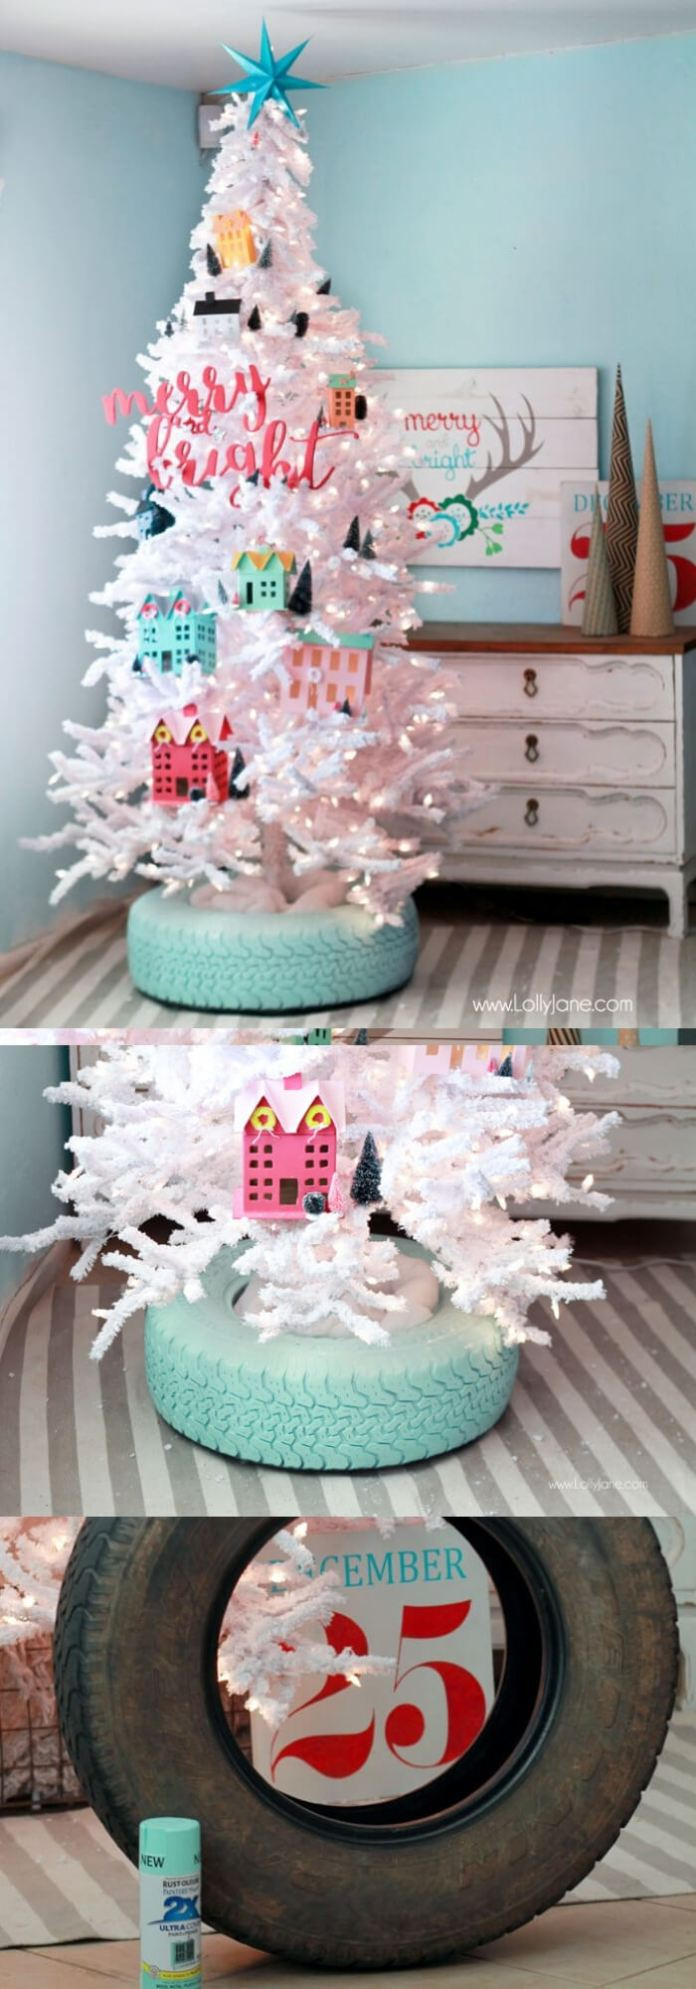 Recycled Tire Christmas Tree Base | Best Recycled Tire Christmas Decoration Ideas | FarmFoodFamily.com